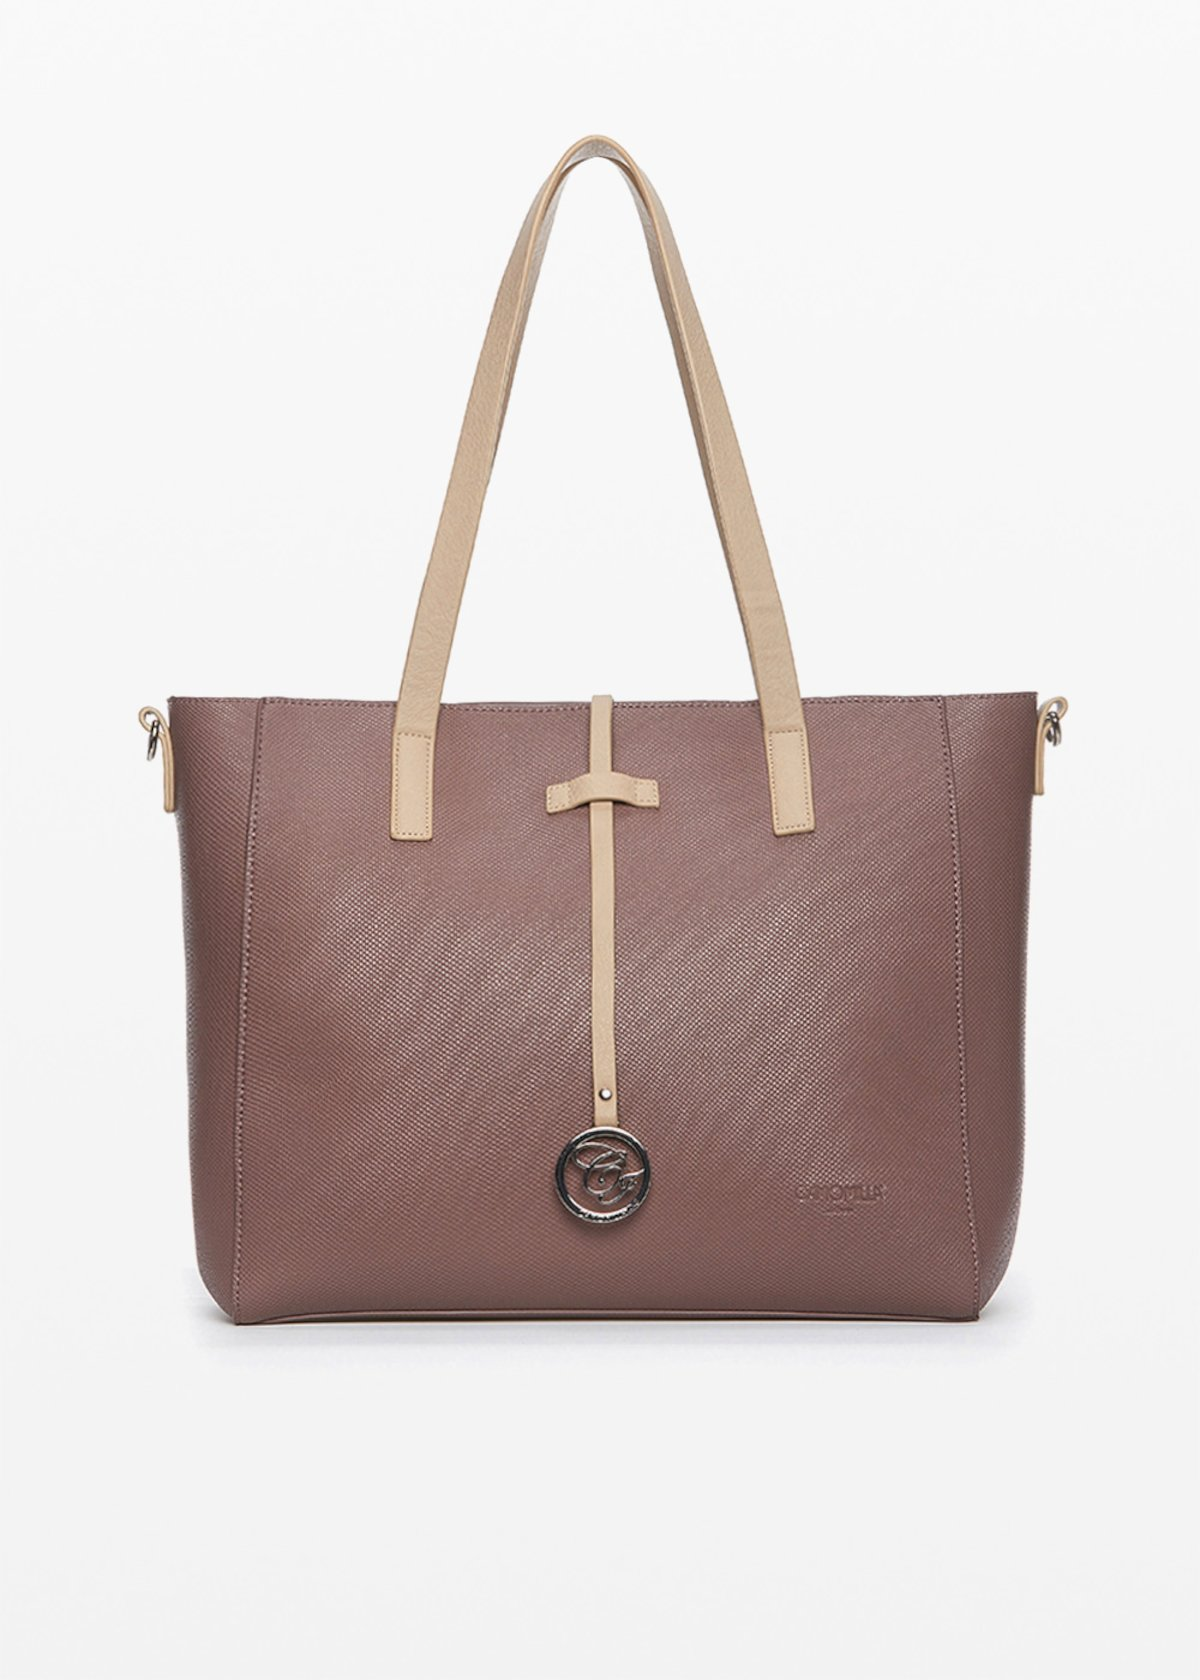 Brigitta Shopping faux leather bicolour bag with logo charm on the front - Calcite / Doeskin - Woman - Category image